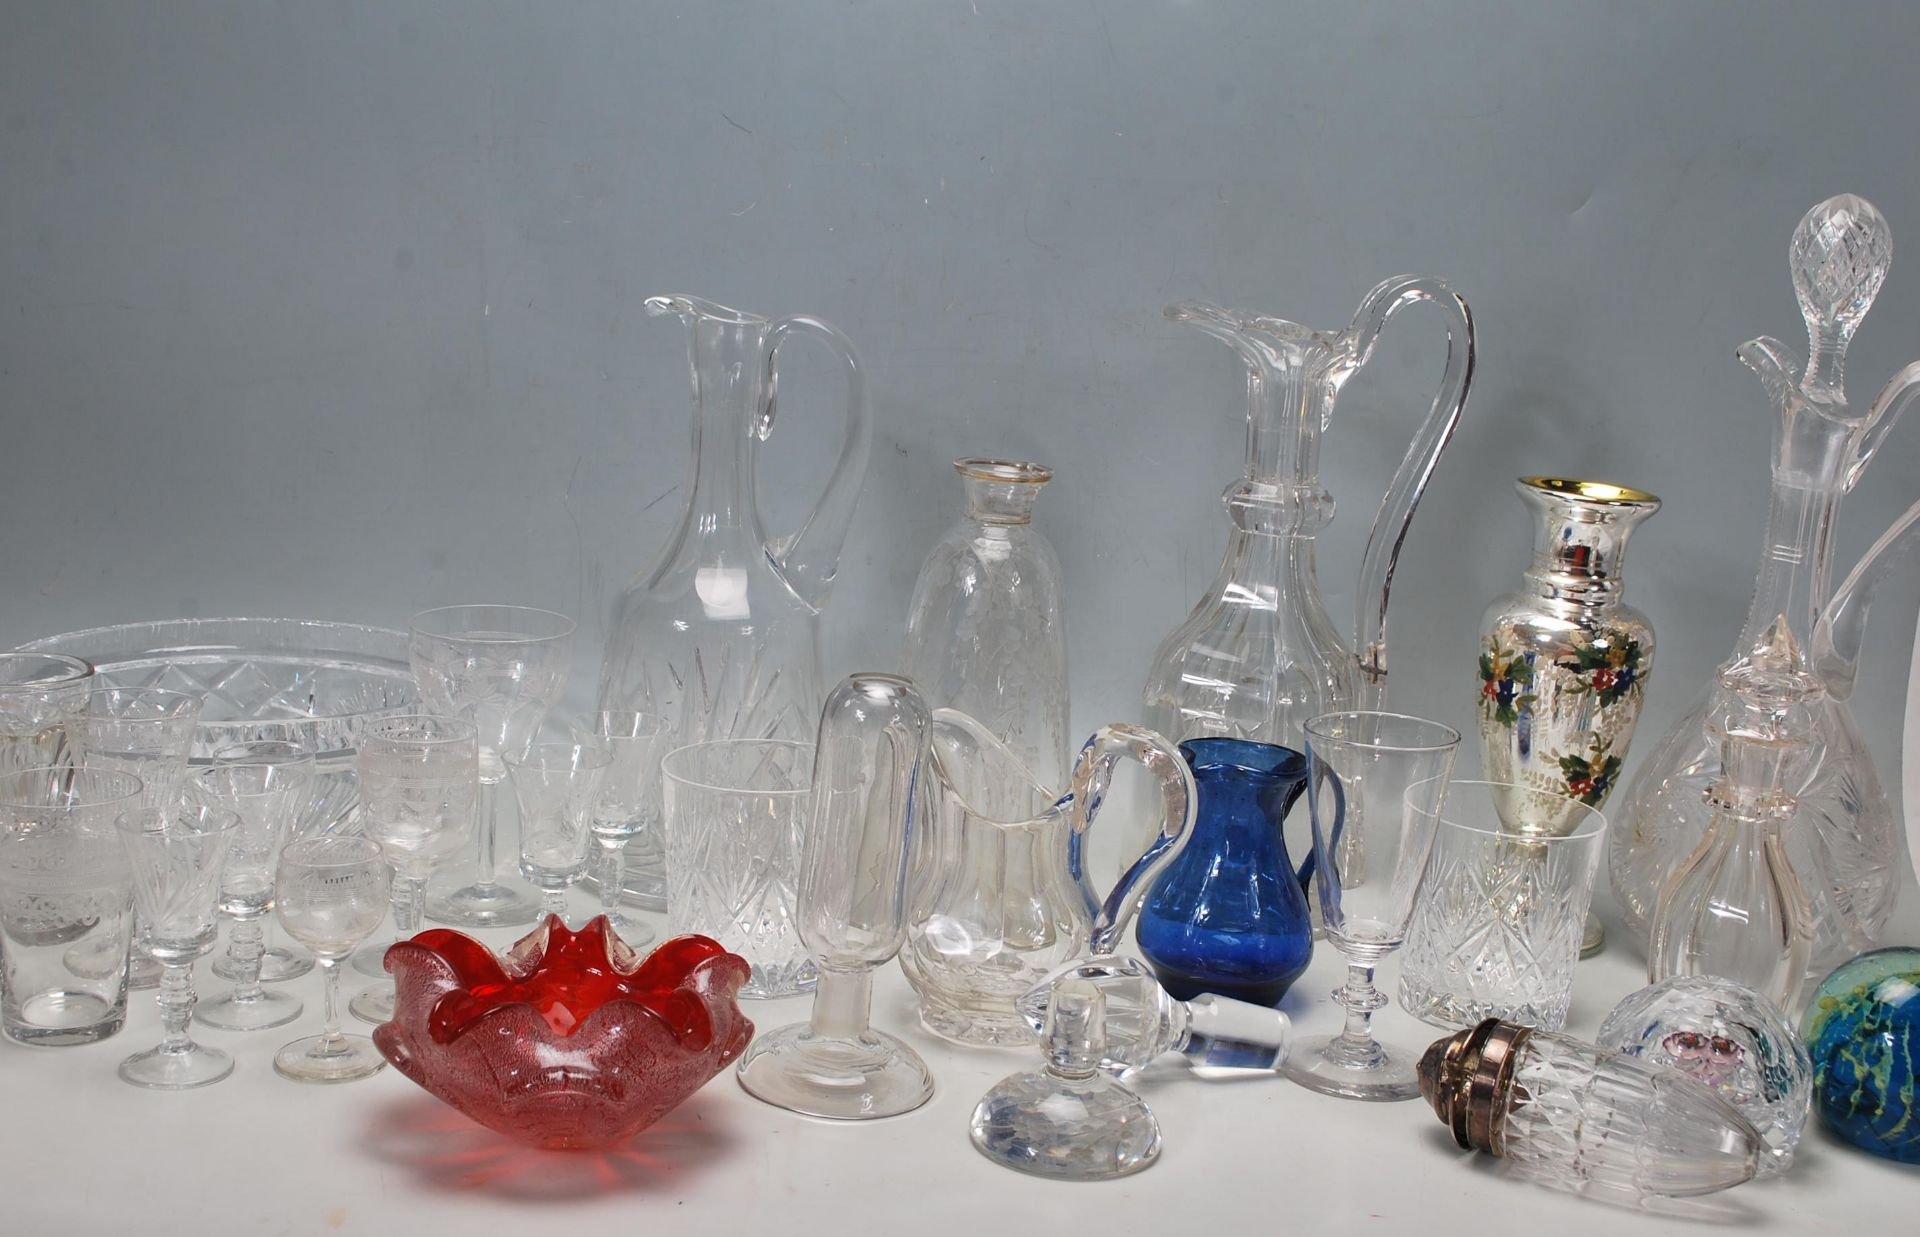 LARGE COLELCTION OF 10TH CENTURY AND LATER CRYSTAL GLASS